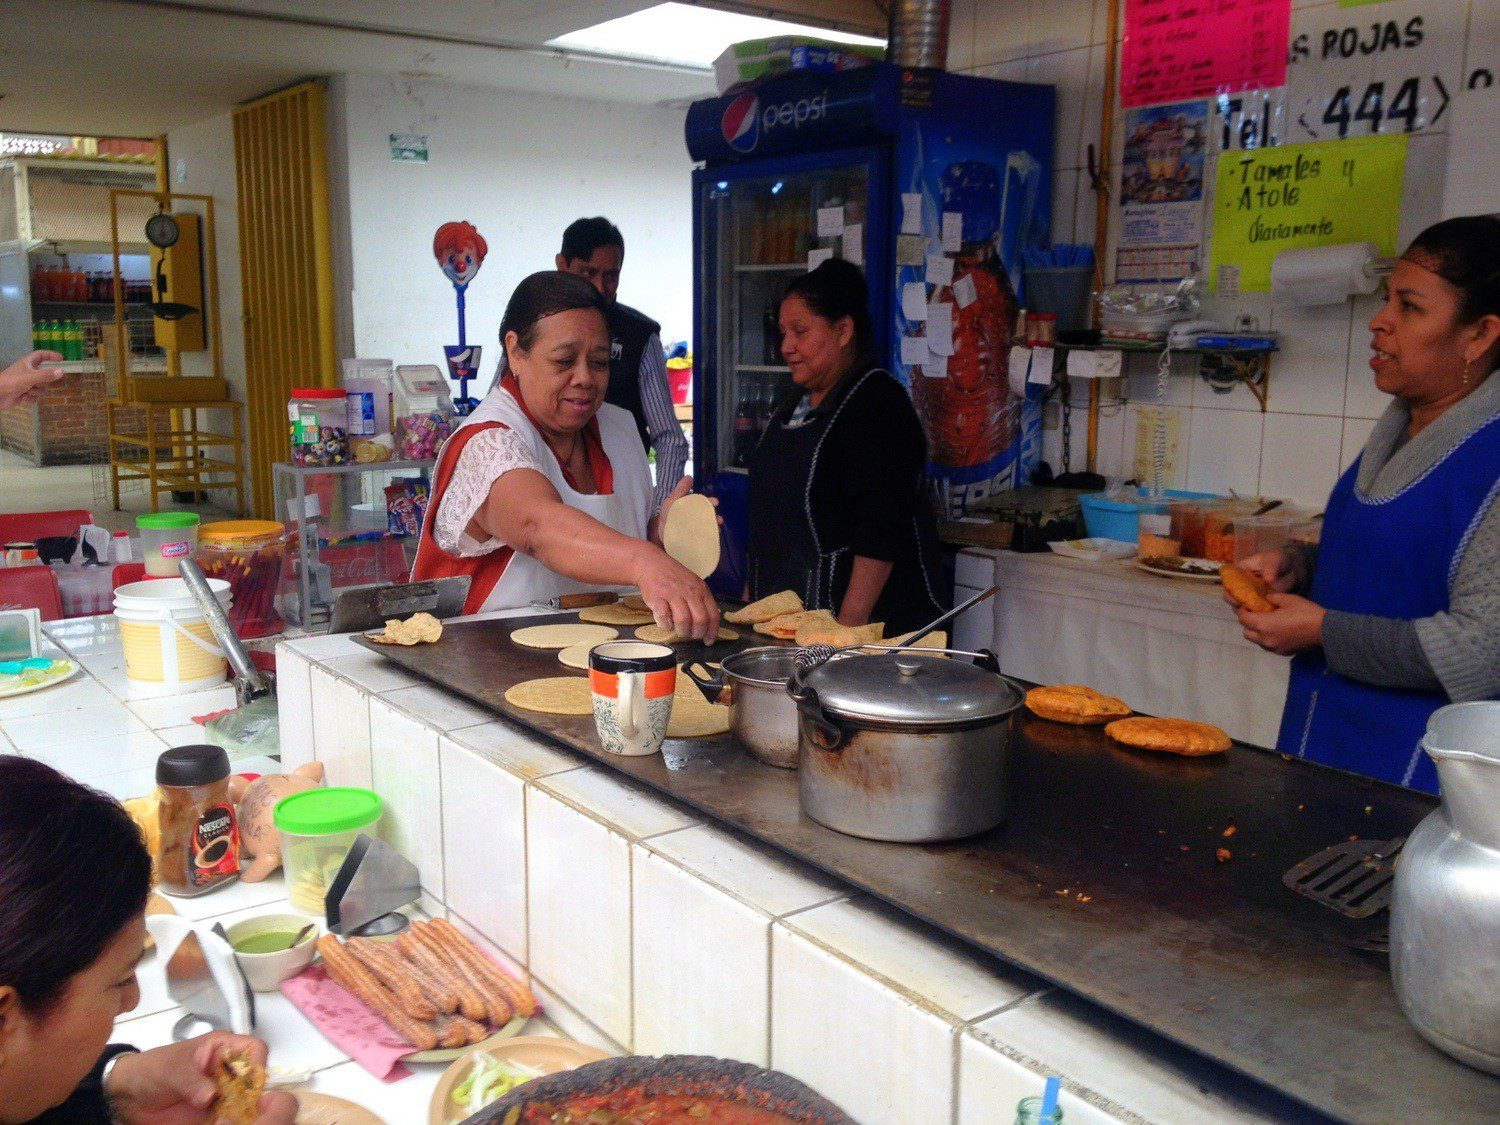 In Mexico, Beth eats at small, local places where she gets to know the owners and practice her Spanish.